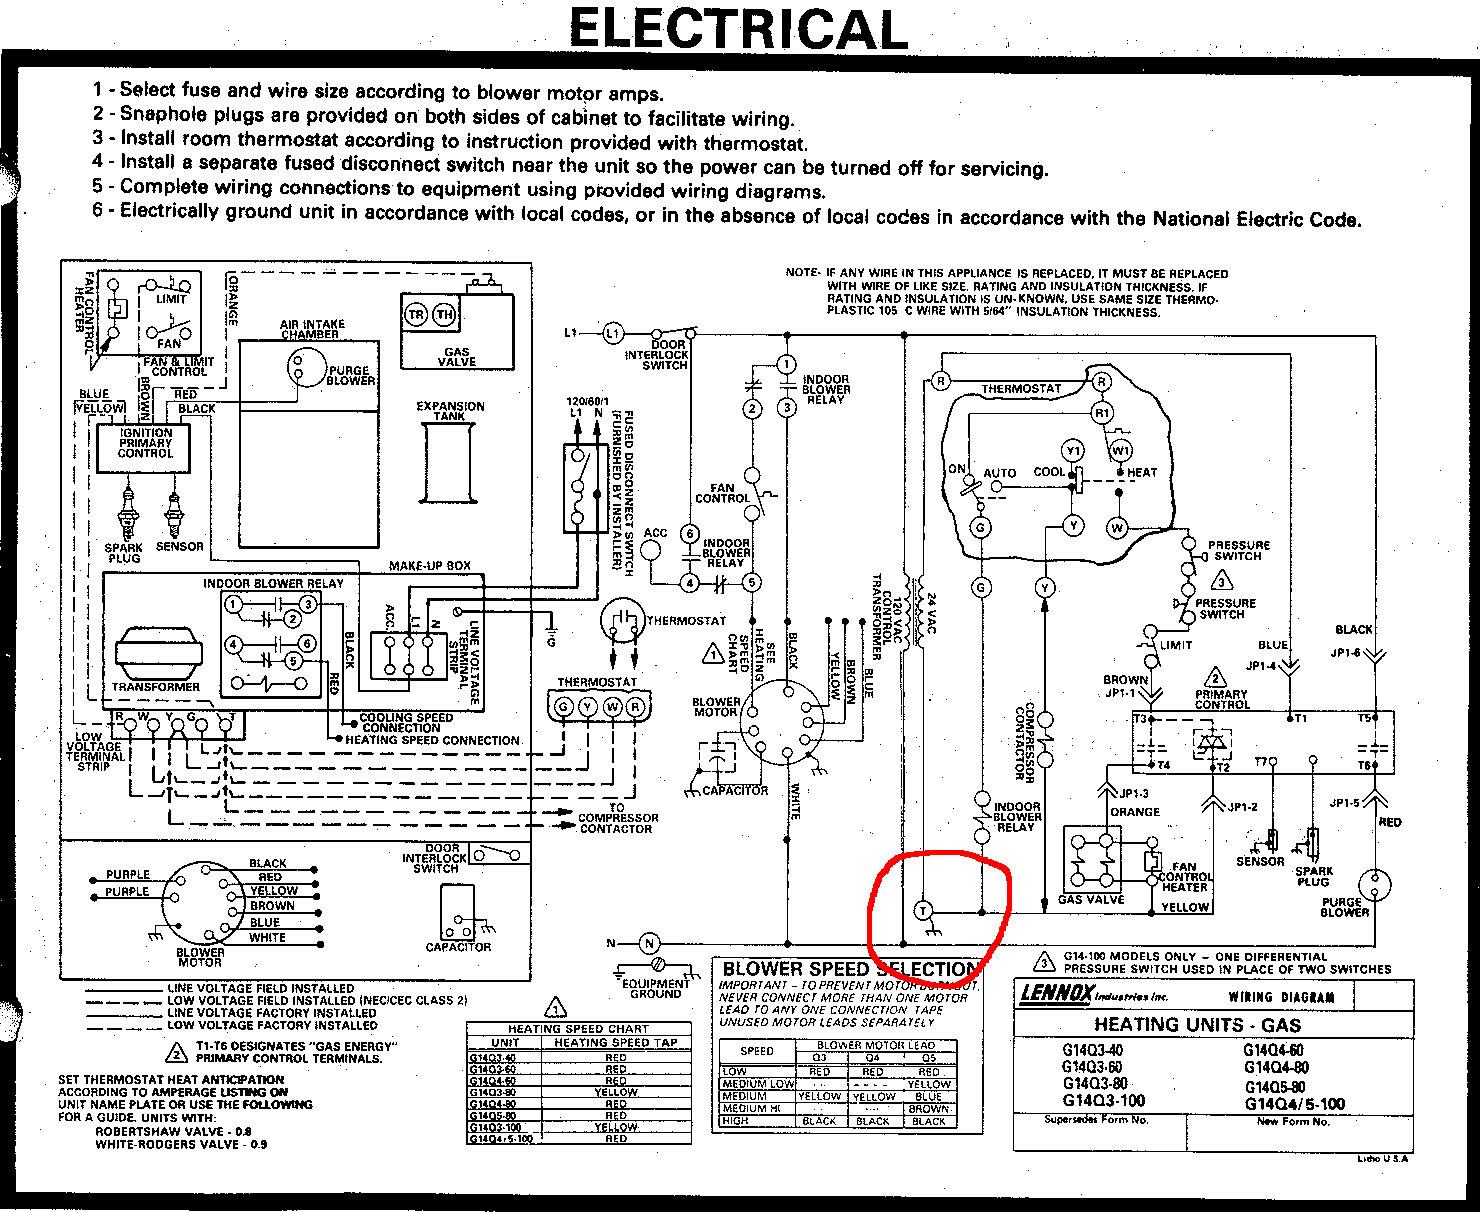 hvac transformer wiring diagram tow hitch can i use the t terminal in my furnace as c for a wifi